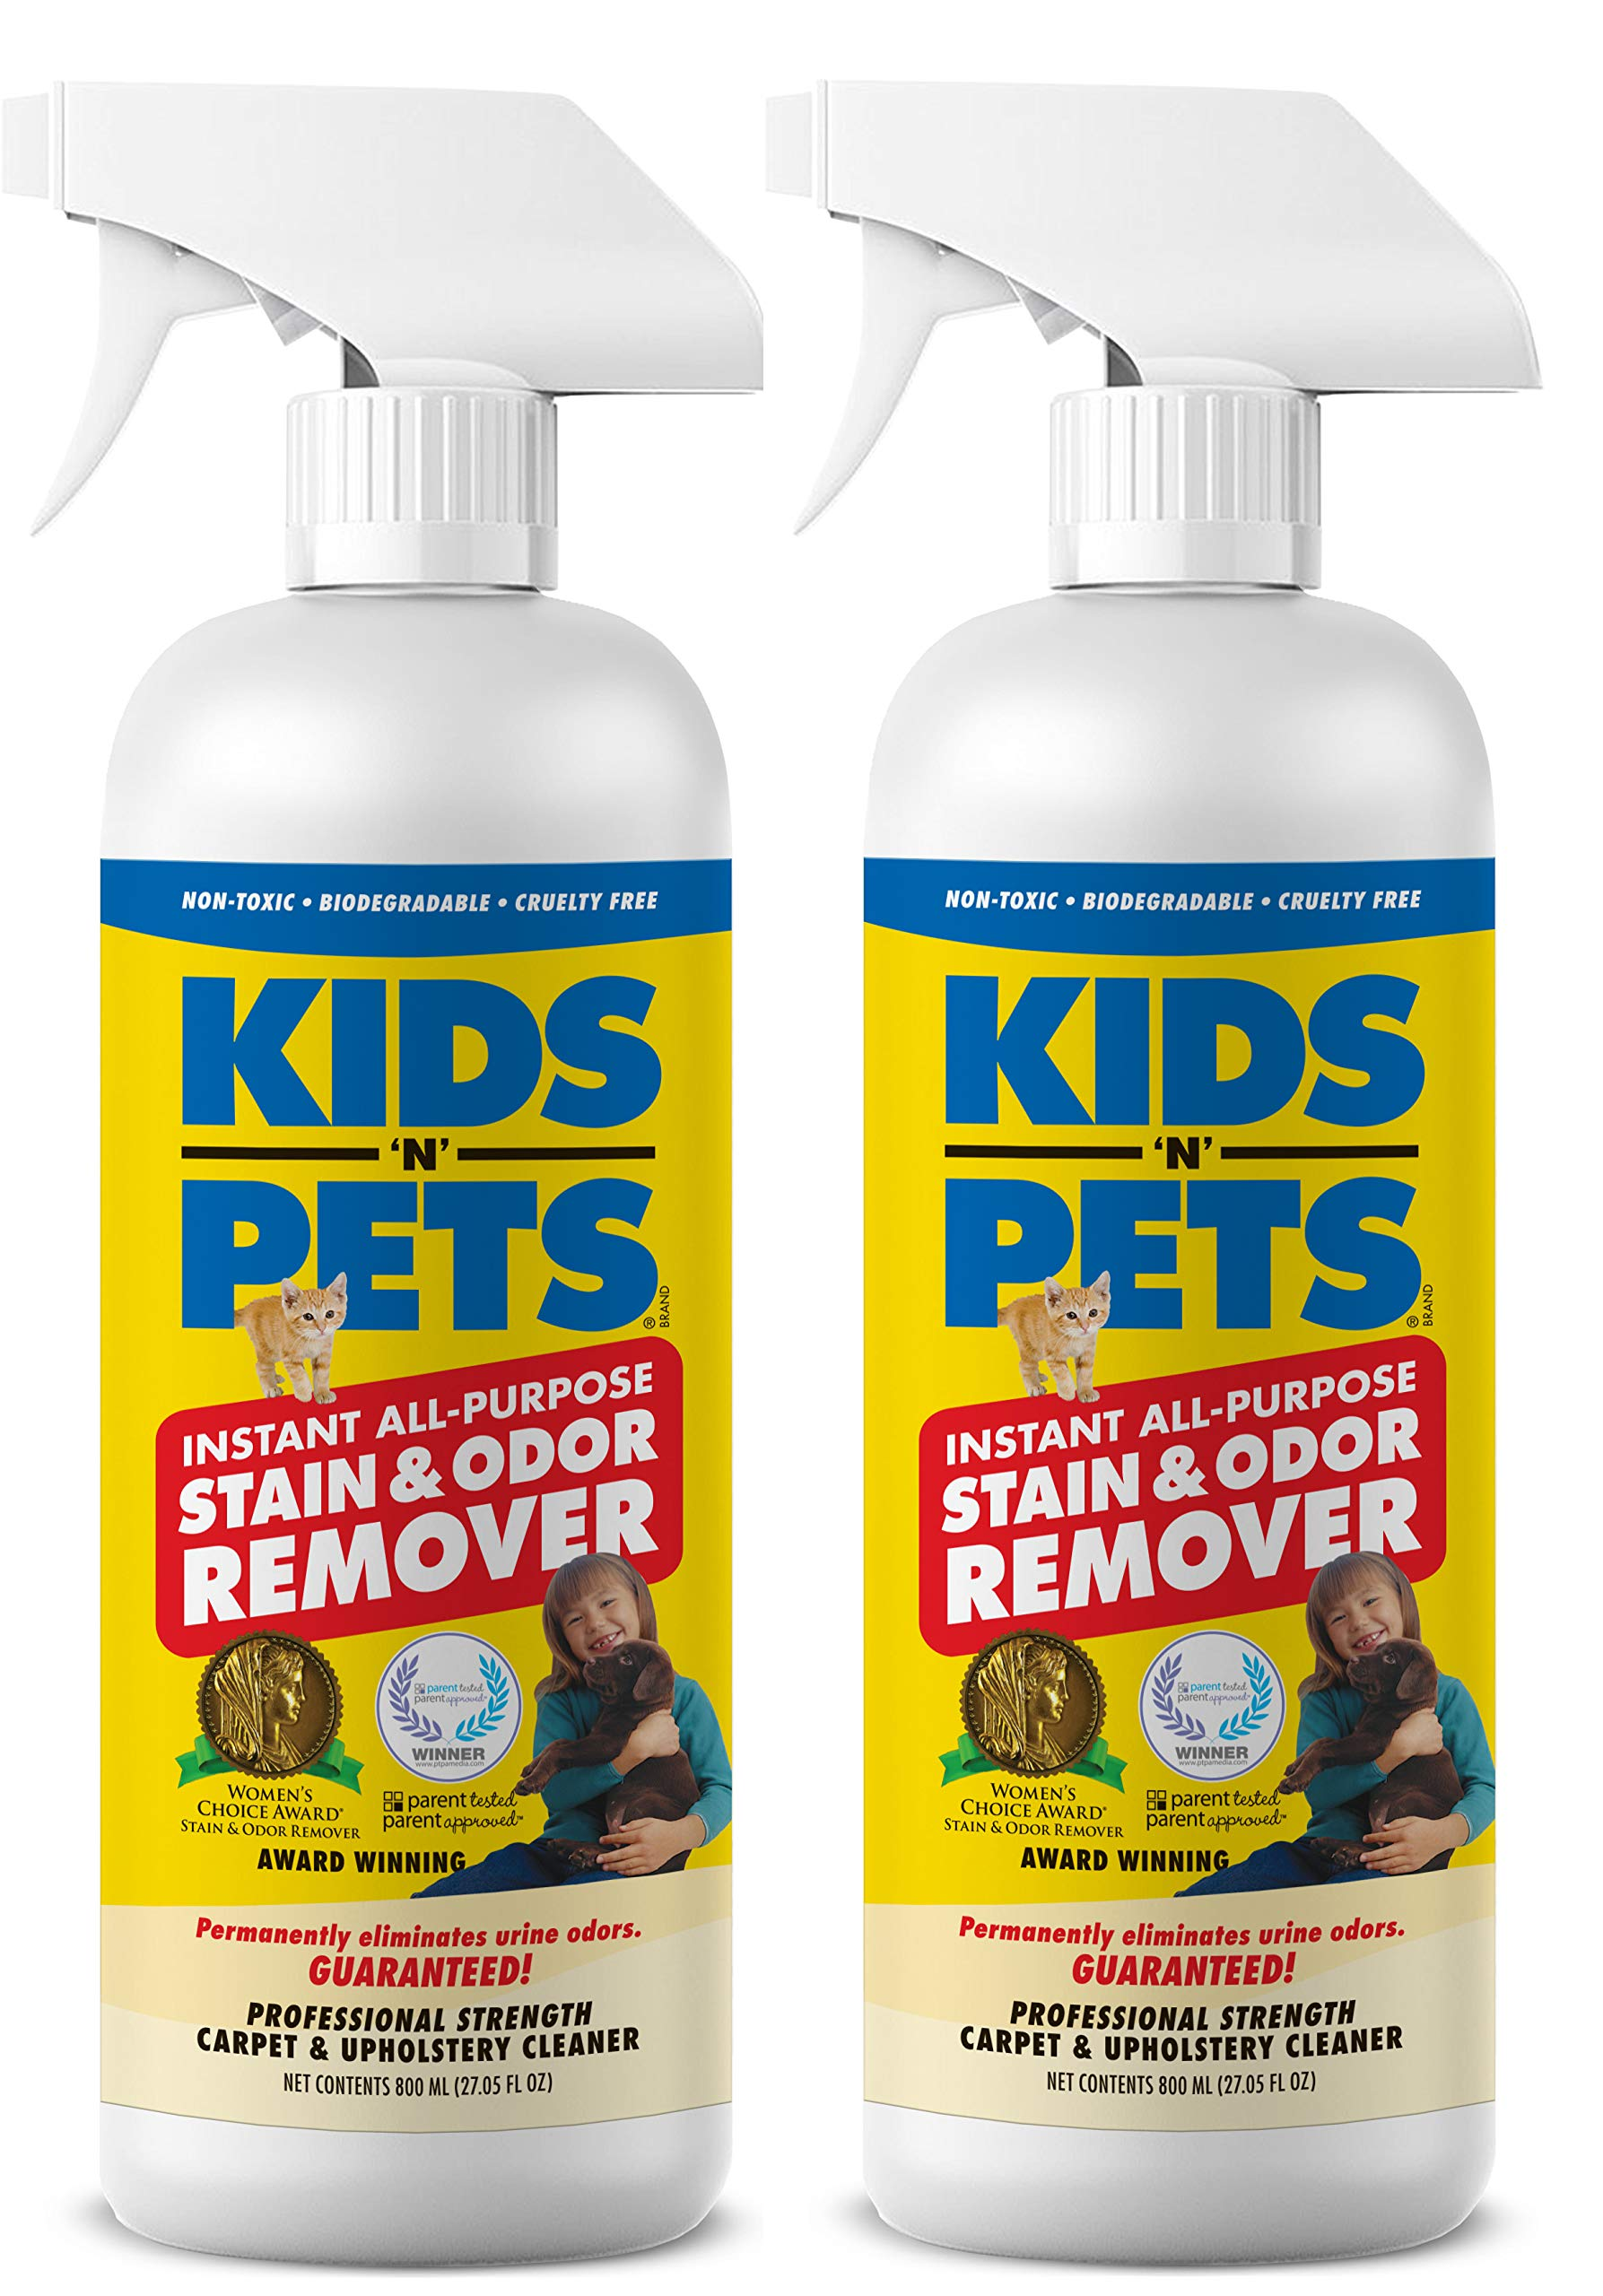 KIDS 'N' PETS - Instant All-Purpose Stain & Odor Remover - 27.05 oz - (800 ml) - Proprietary Formula Permanently Eliminates Tough Stains & Odors - Even Urine Odors - Non-Toxic & Child Safe by KIDS 'N' PETS